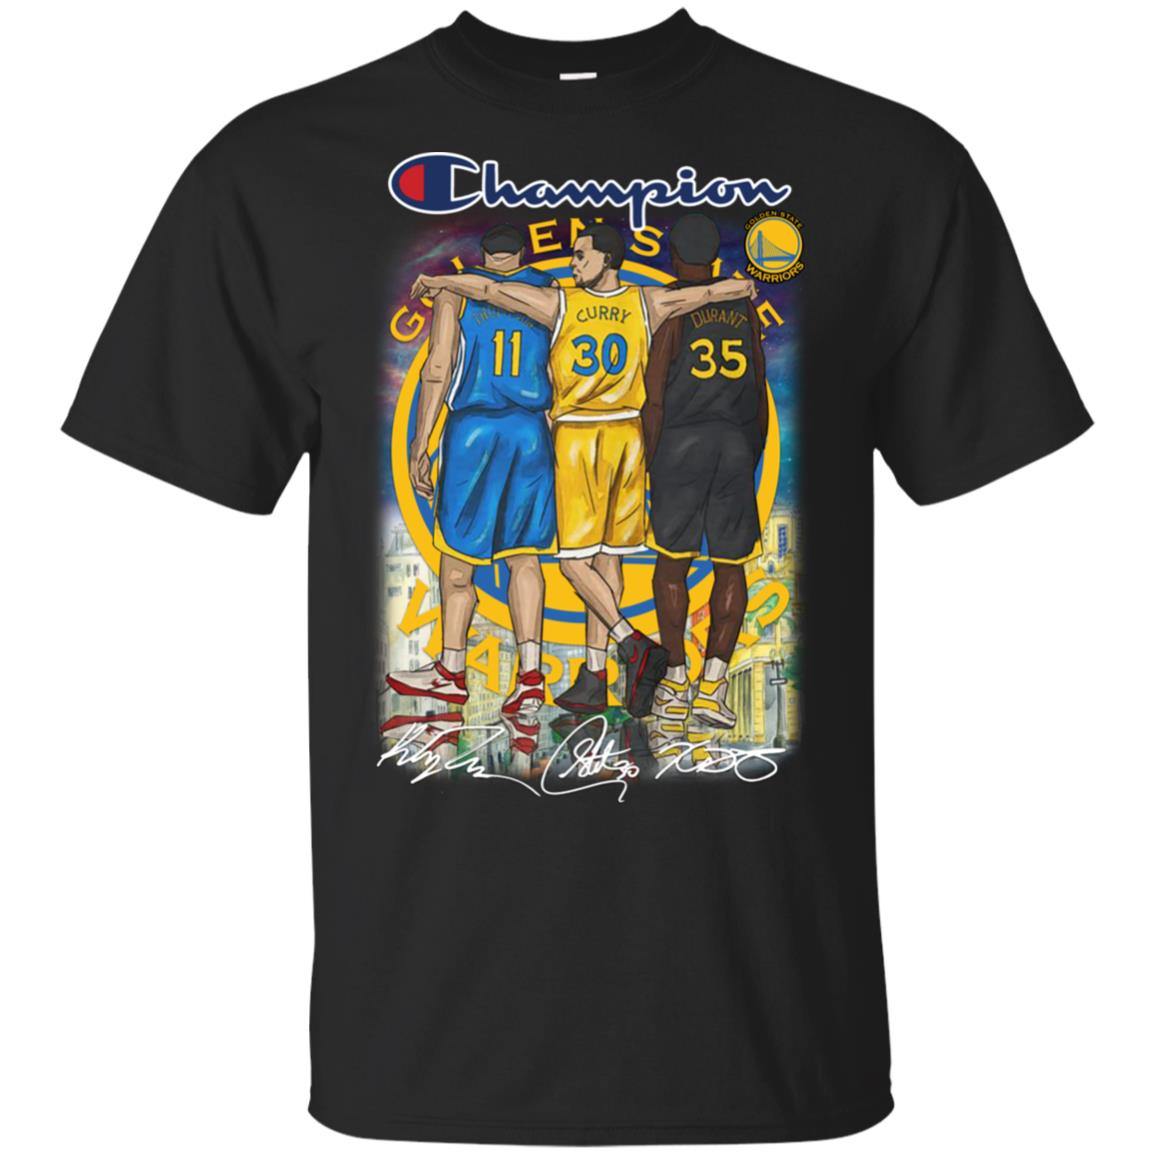 buy popular 8a833 ac7d0 Champion Golden State Stephen Curry Klay Thompson Kevin Durant shirt